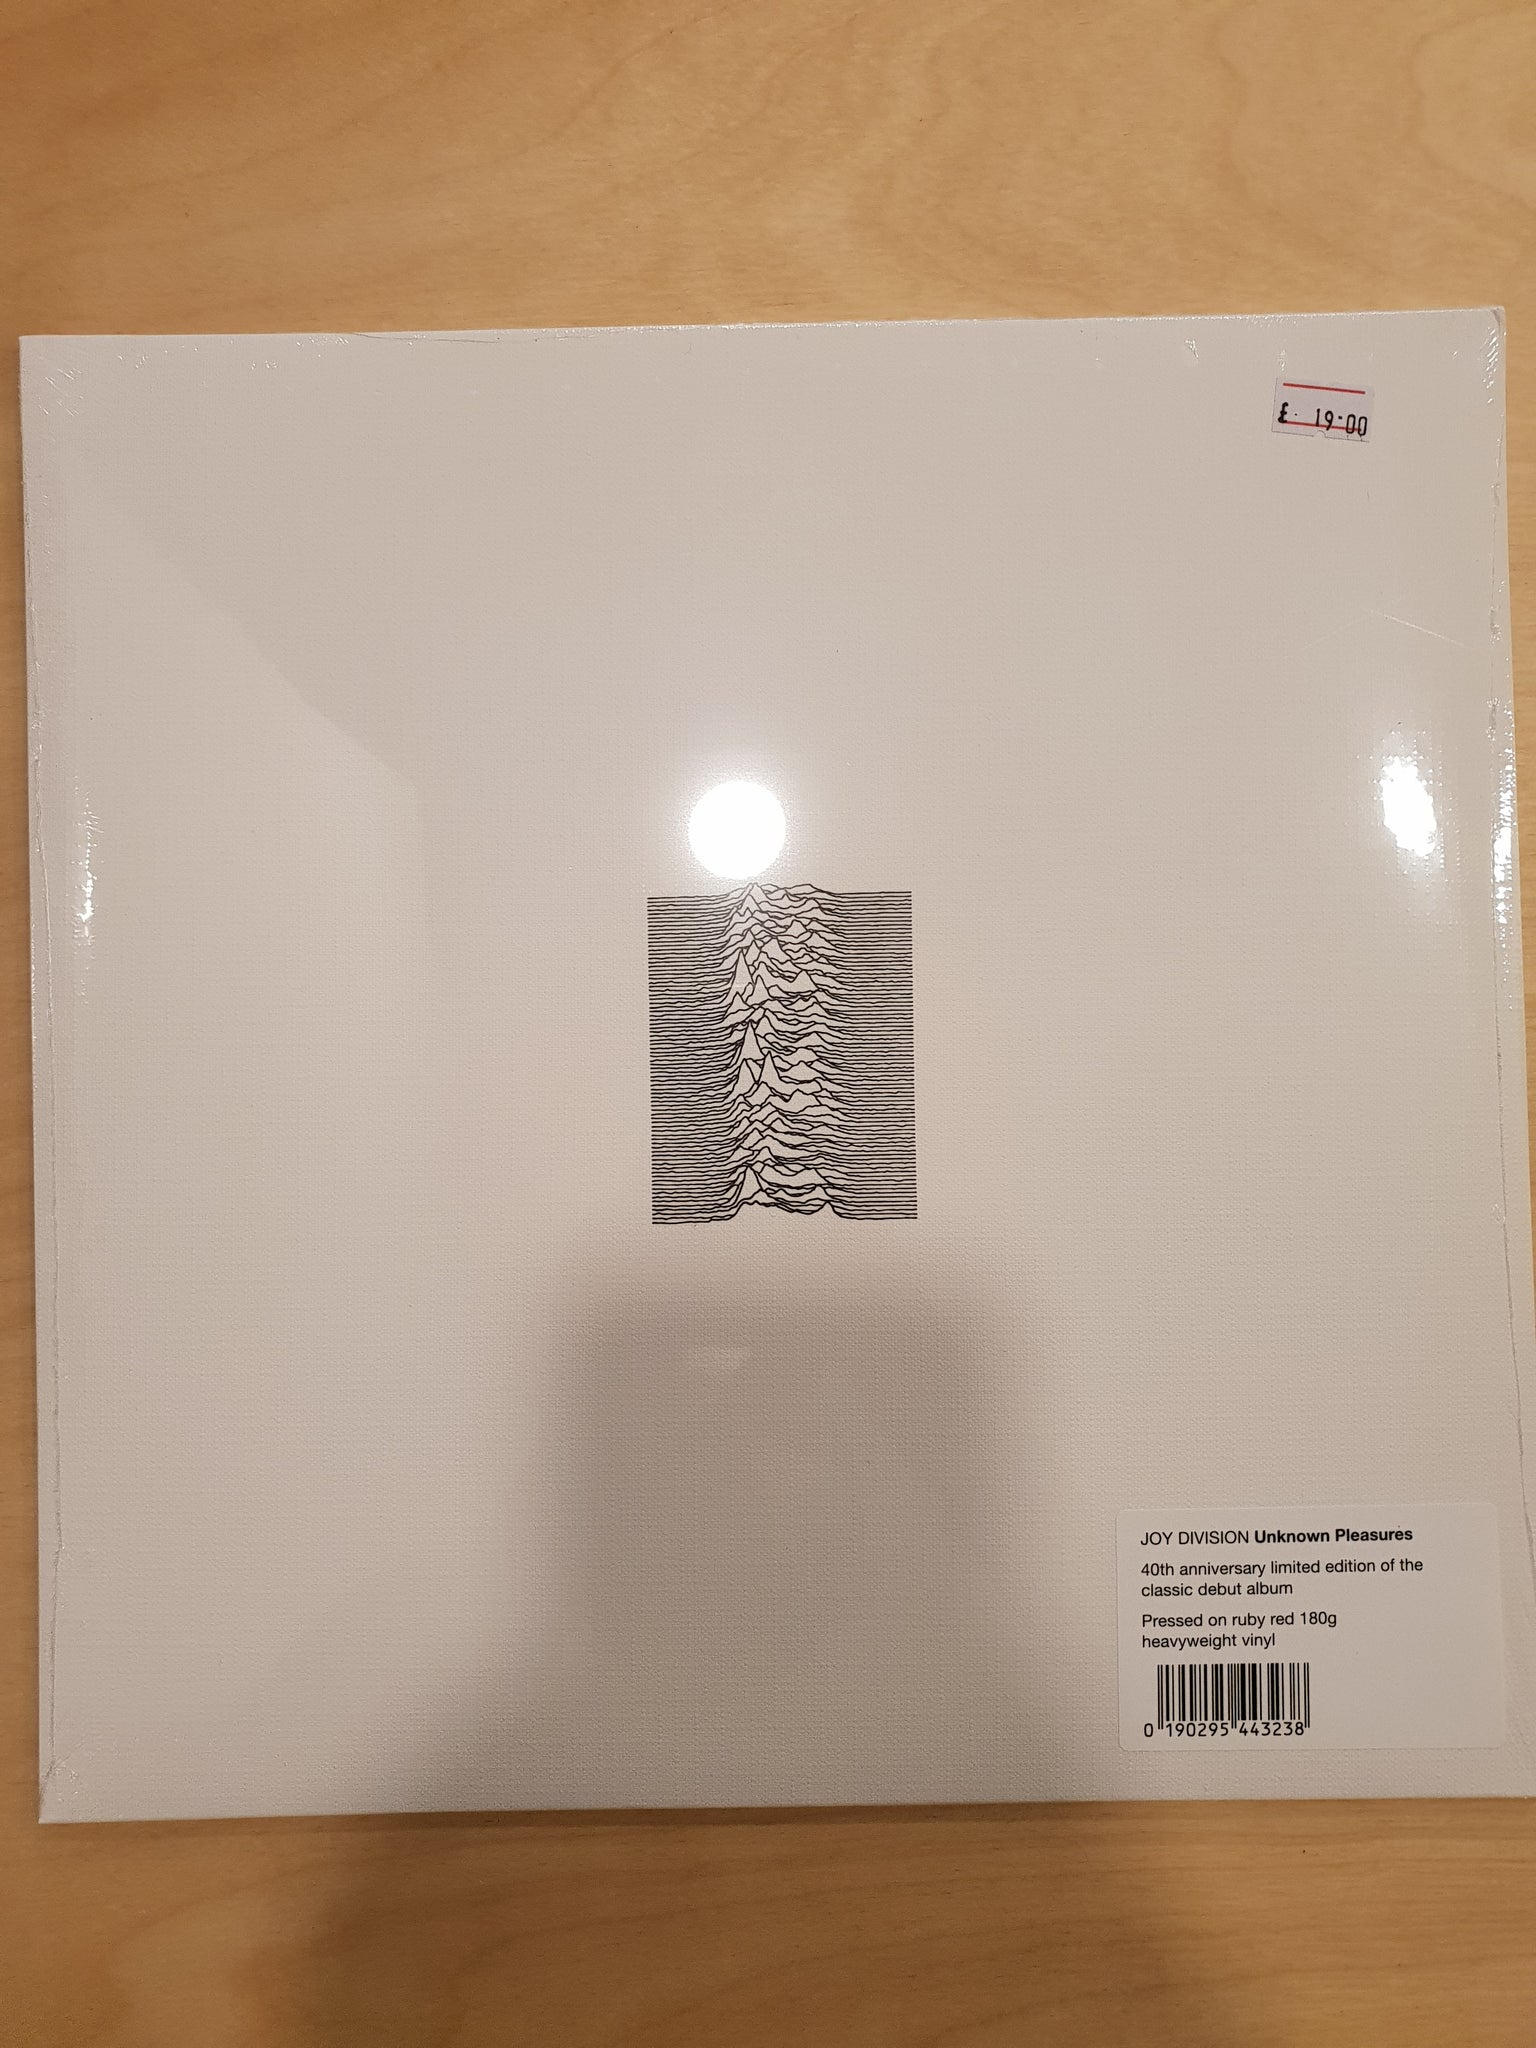 Joy Division - Unknown Pleasures (40th Anniversary Red Vinyl)